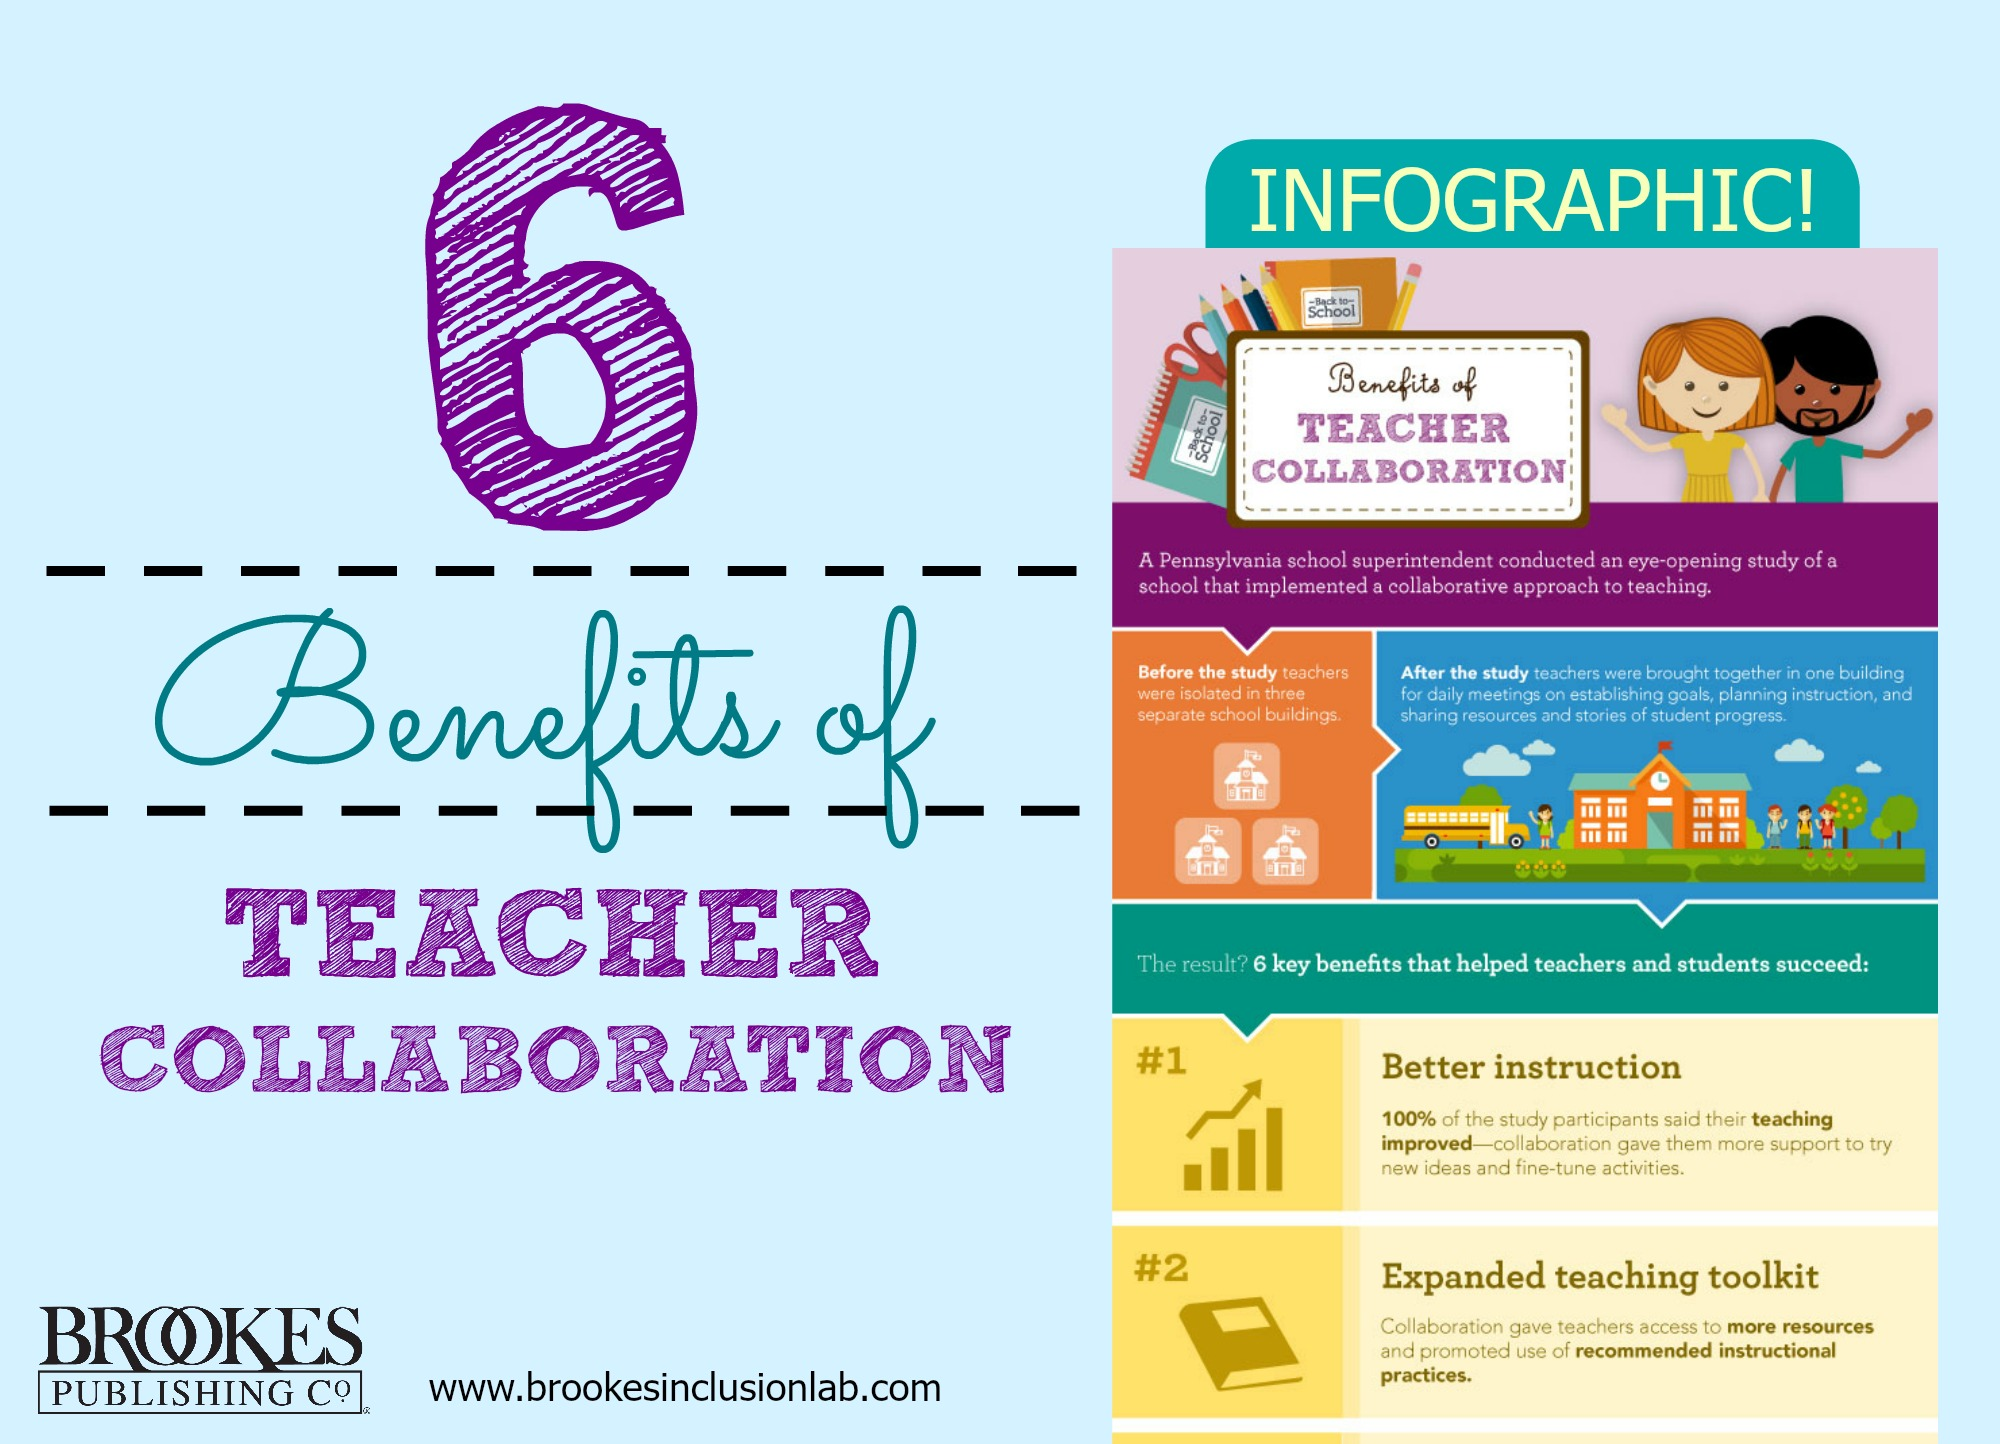 6 Benefits of Teacher Collaboration